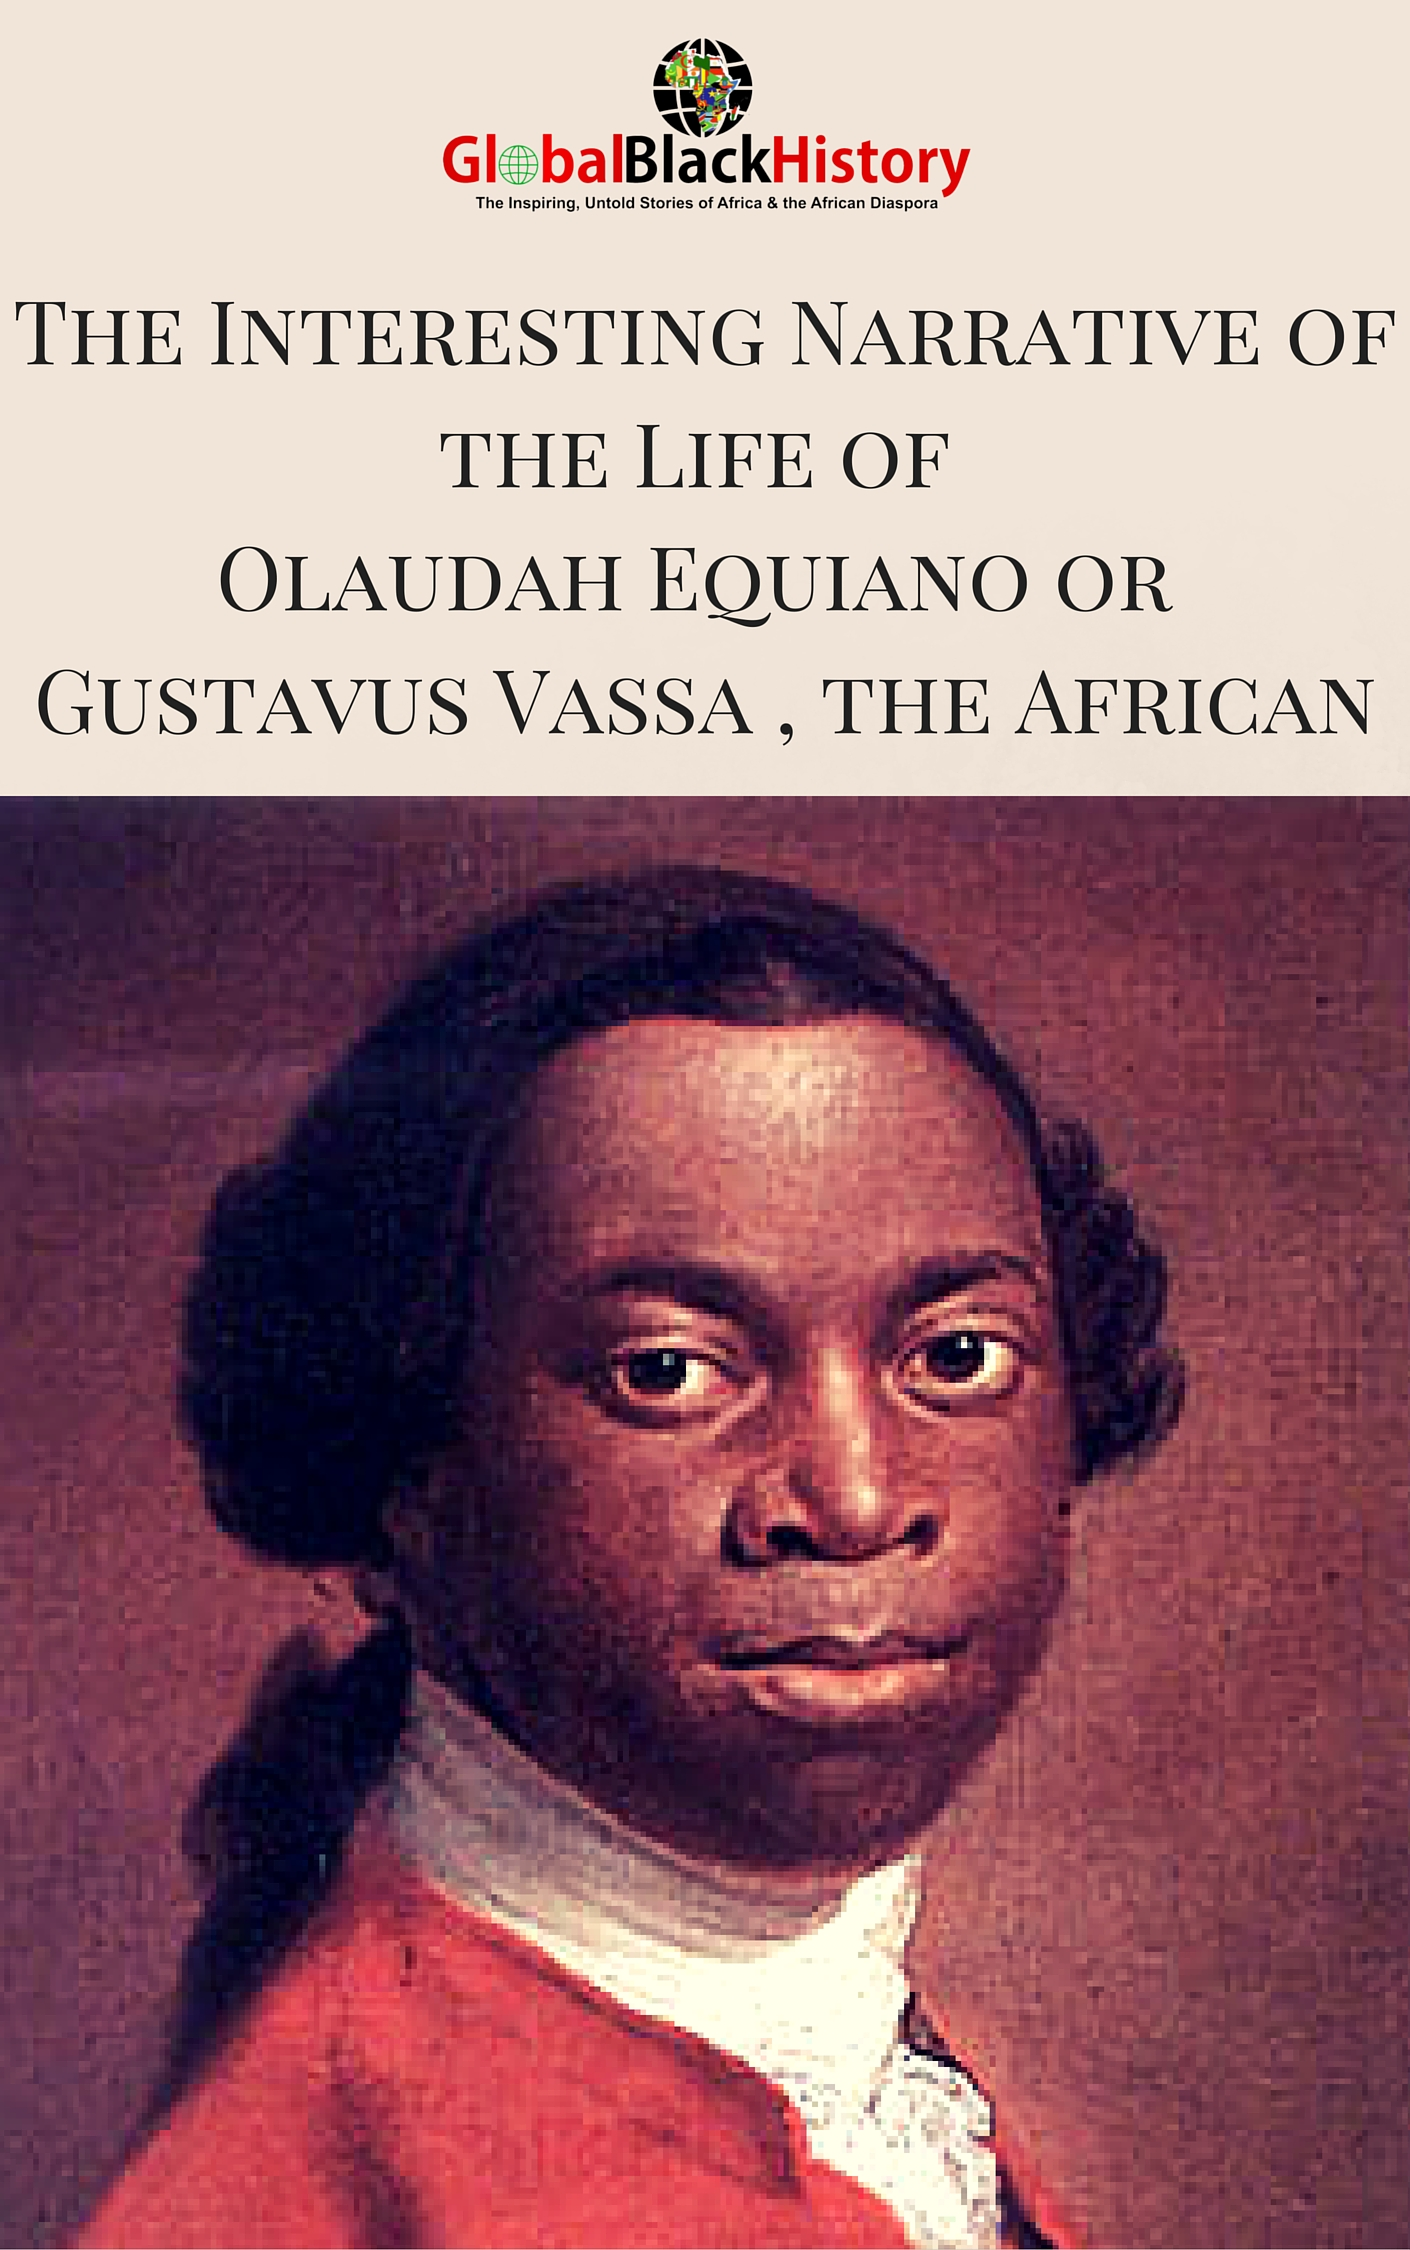 pathos in the life of olaudah equiano Used in 11th grade english education presentation by jmcelroymhs.